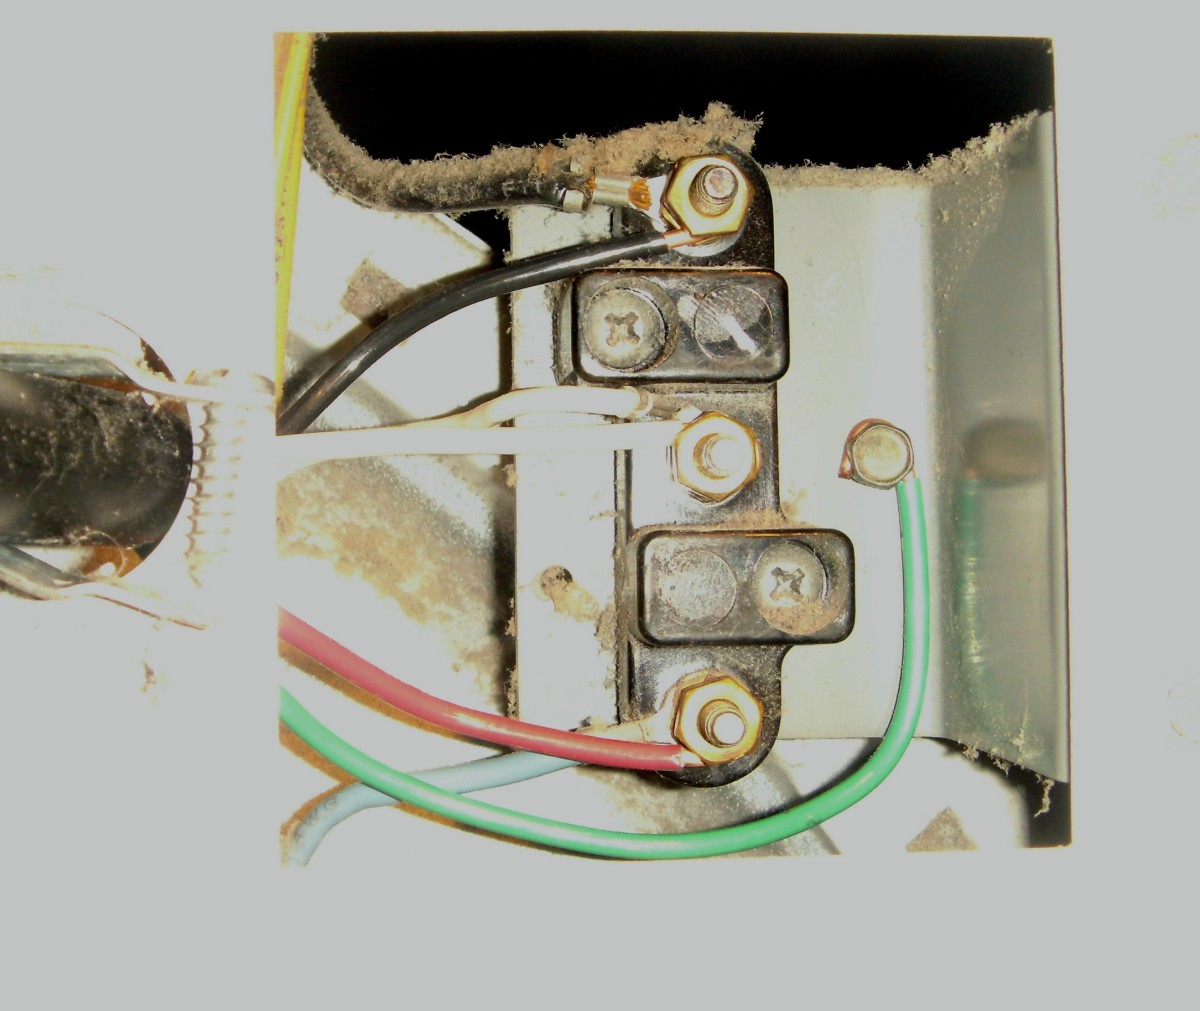 Changing a 3-Prong to 4-Prong Dryer Plug and Cord Dengarden